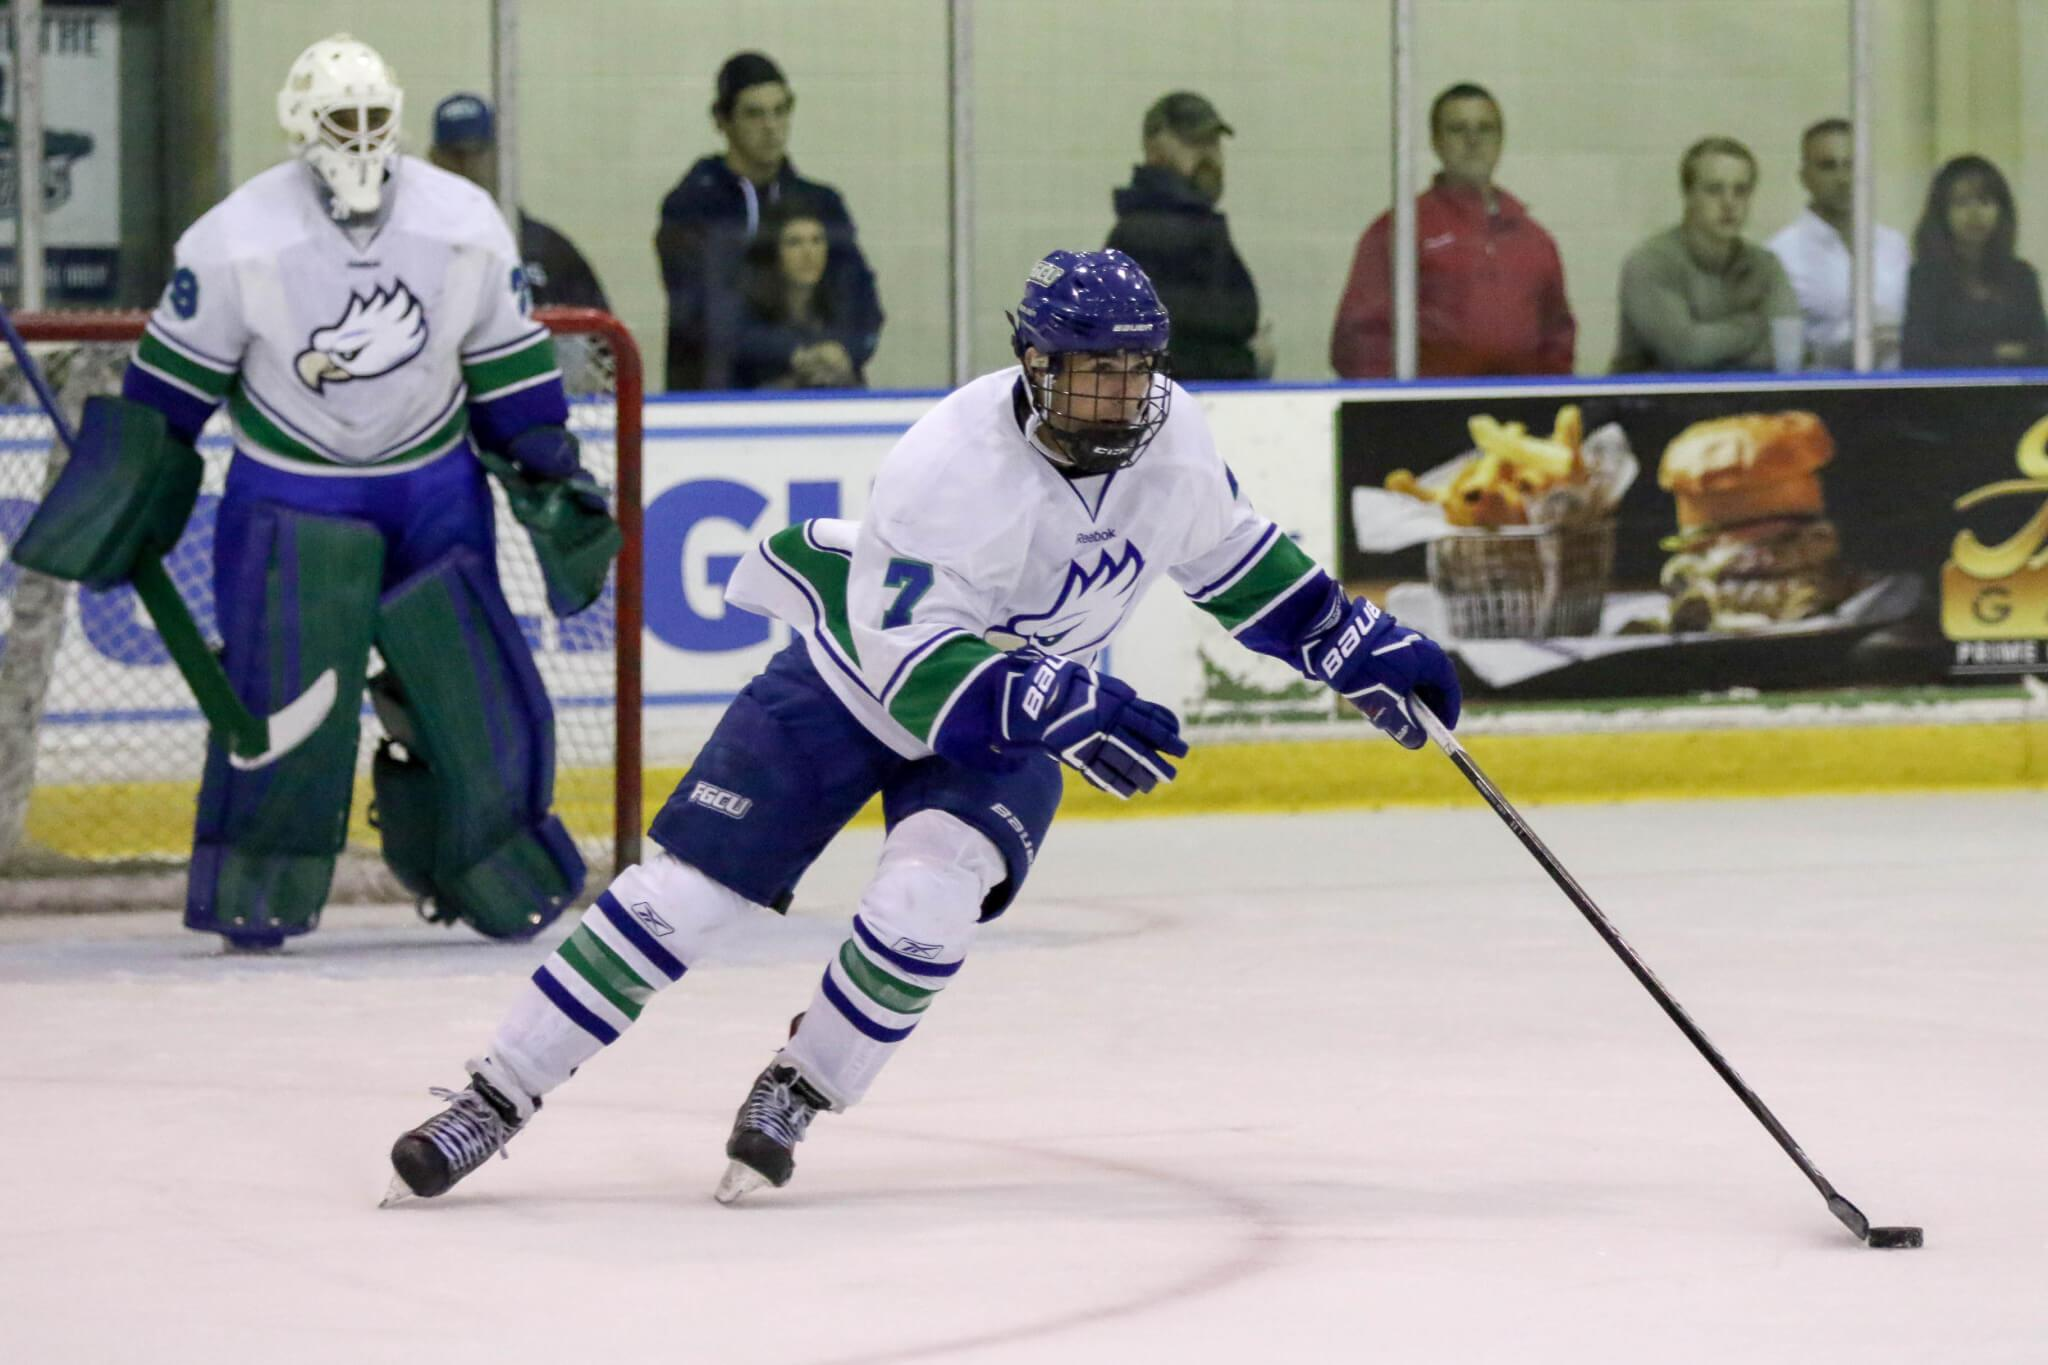 FGCU DII hockey defeats Miami in biggest tilt of the season